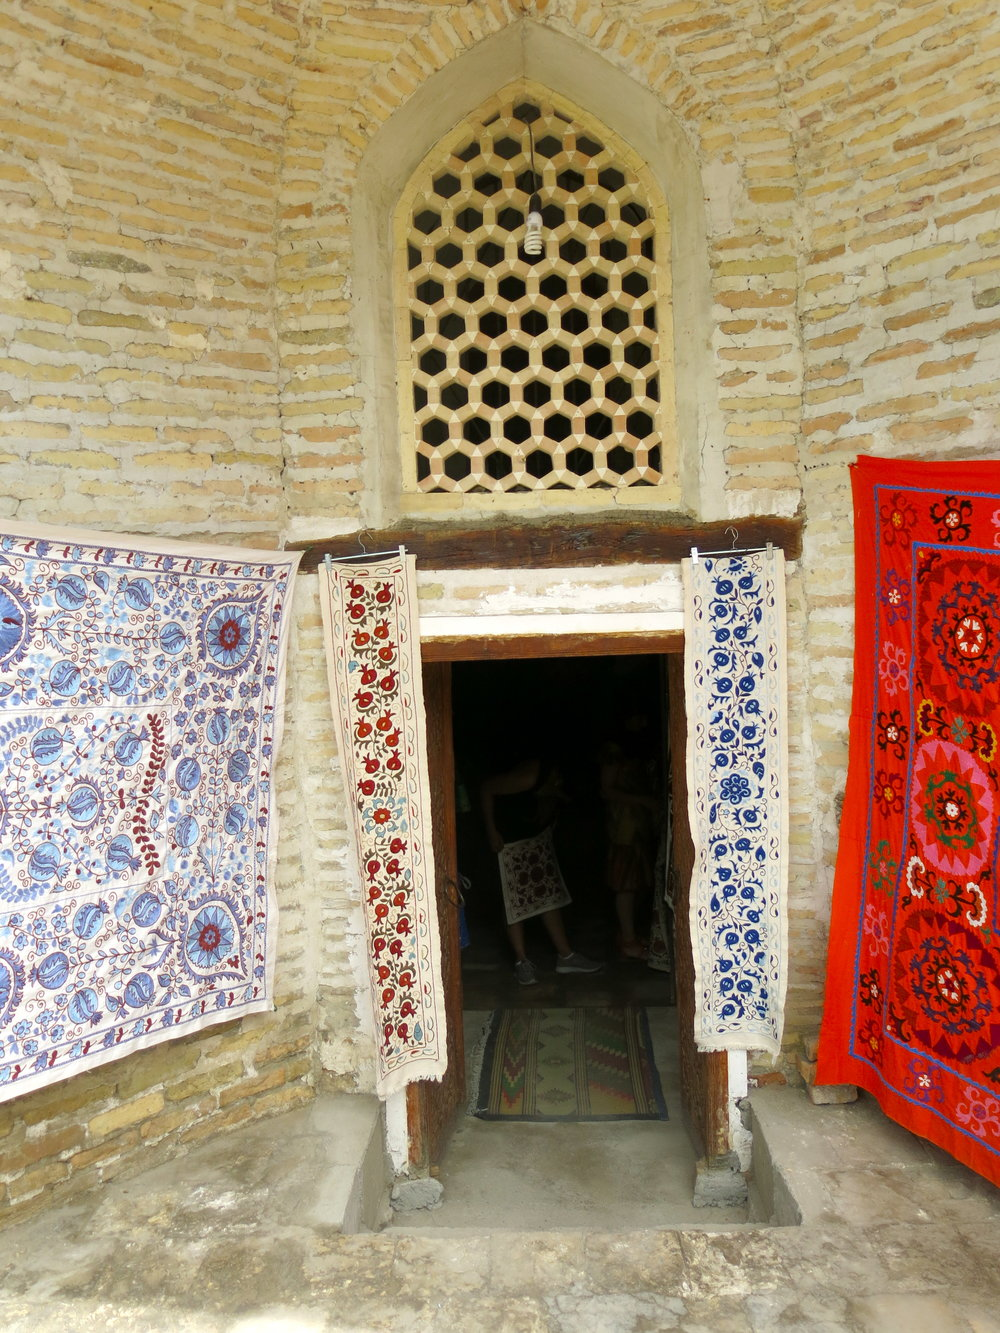 Suzani in a shop within the ancient trading domes of Bukhara